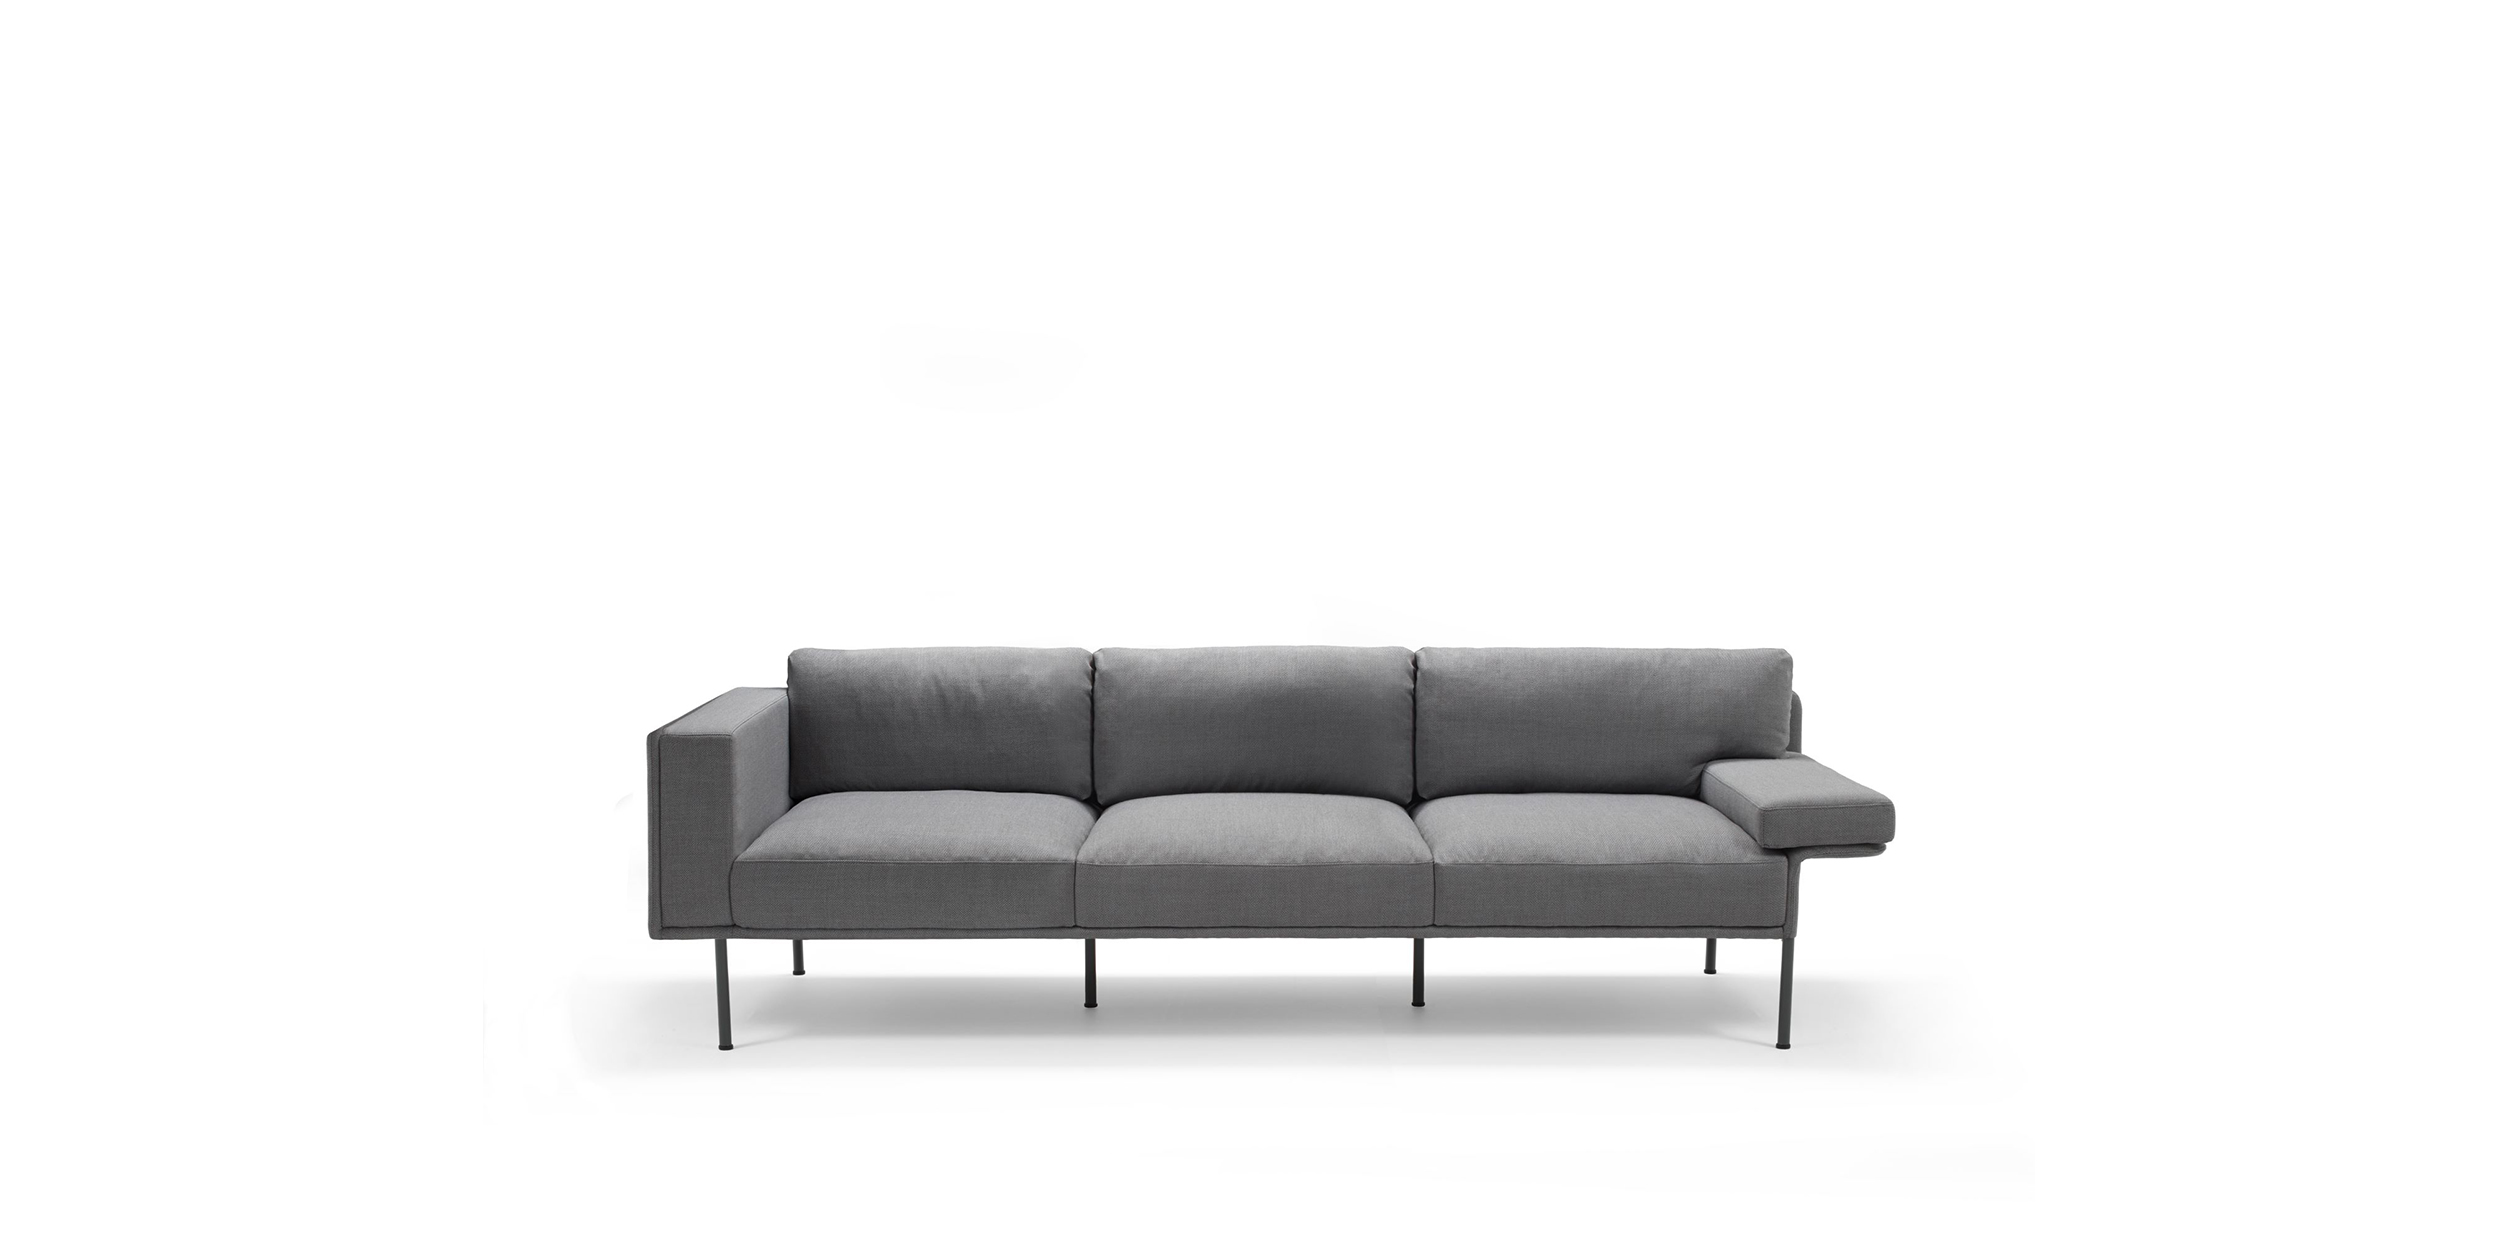 Varilounge Low, Sofa system by Christophe Pillet